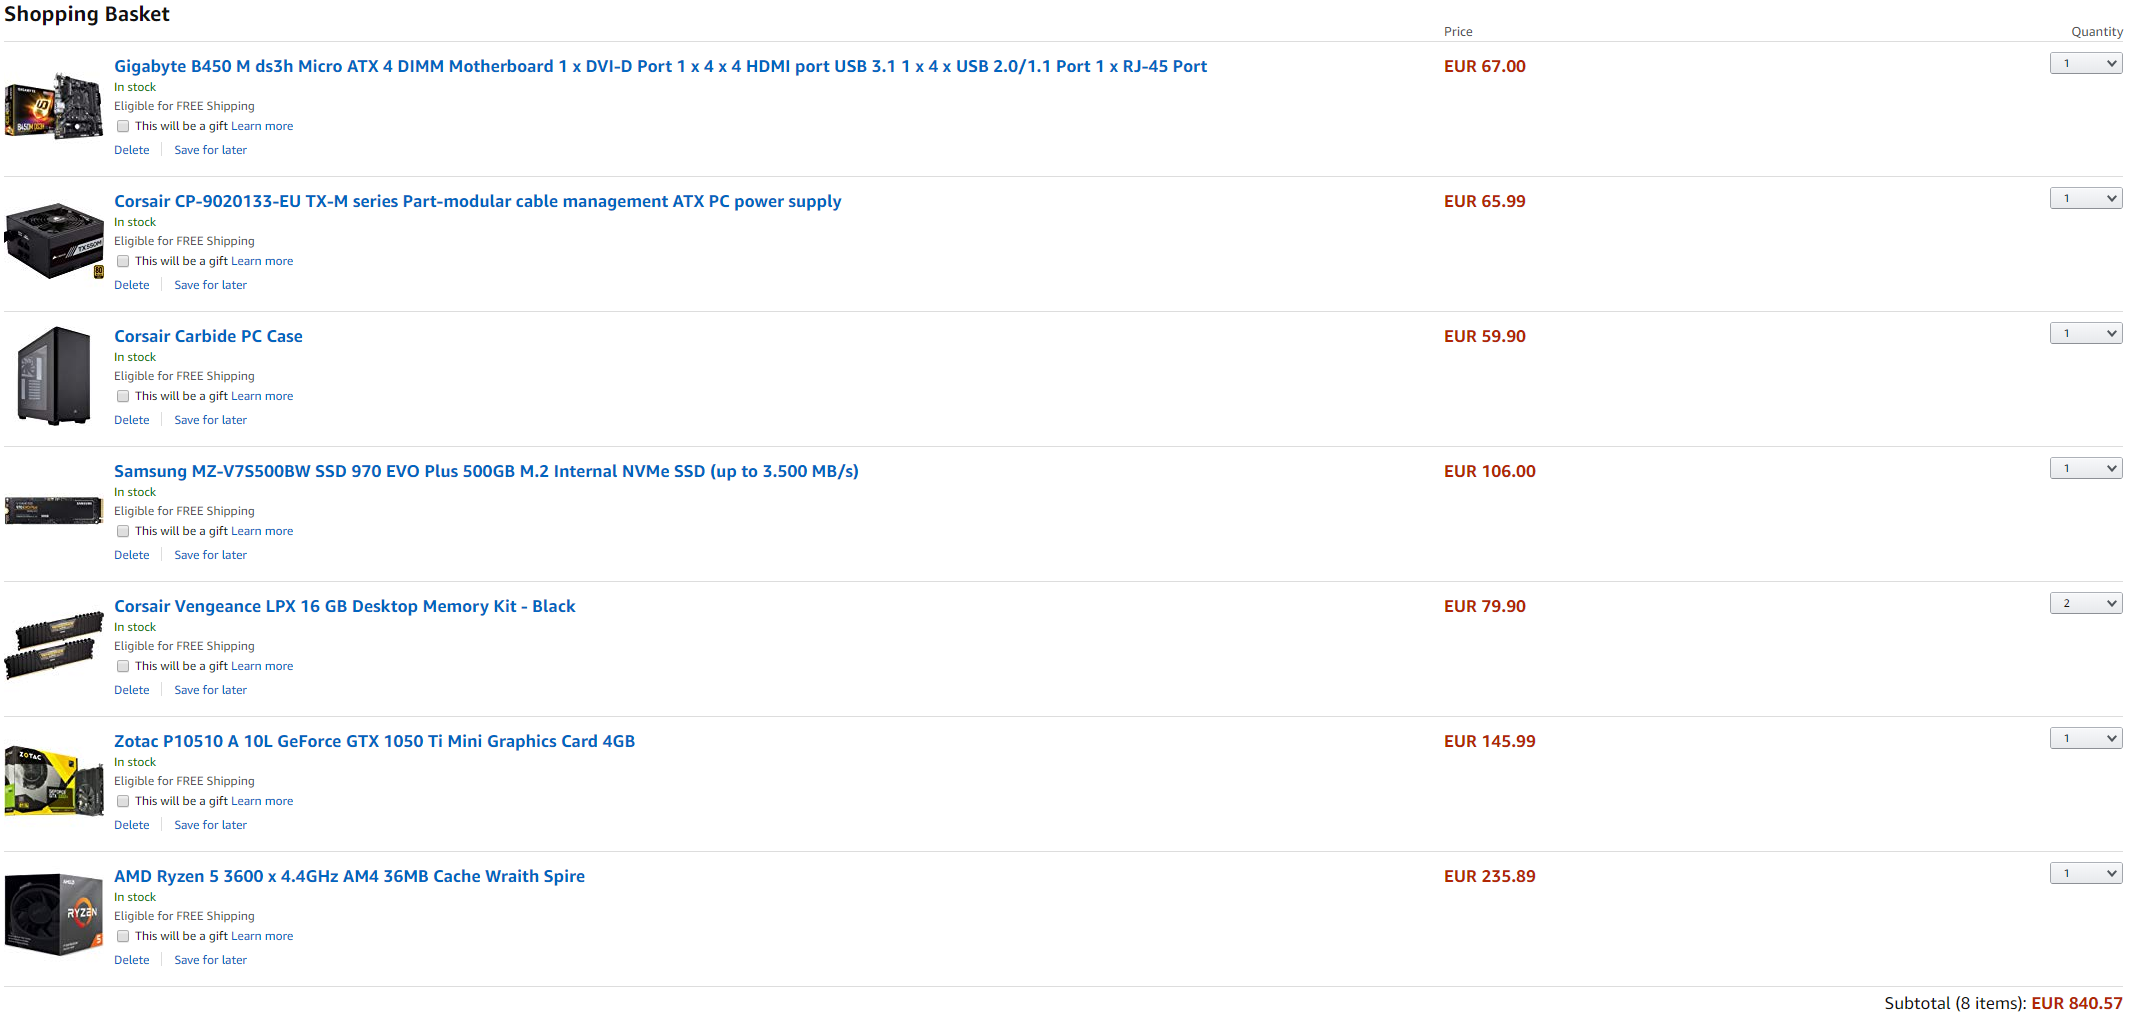 Want to build my dad a Photo editing PC - New Builds and